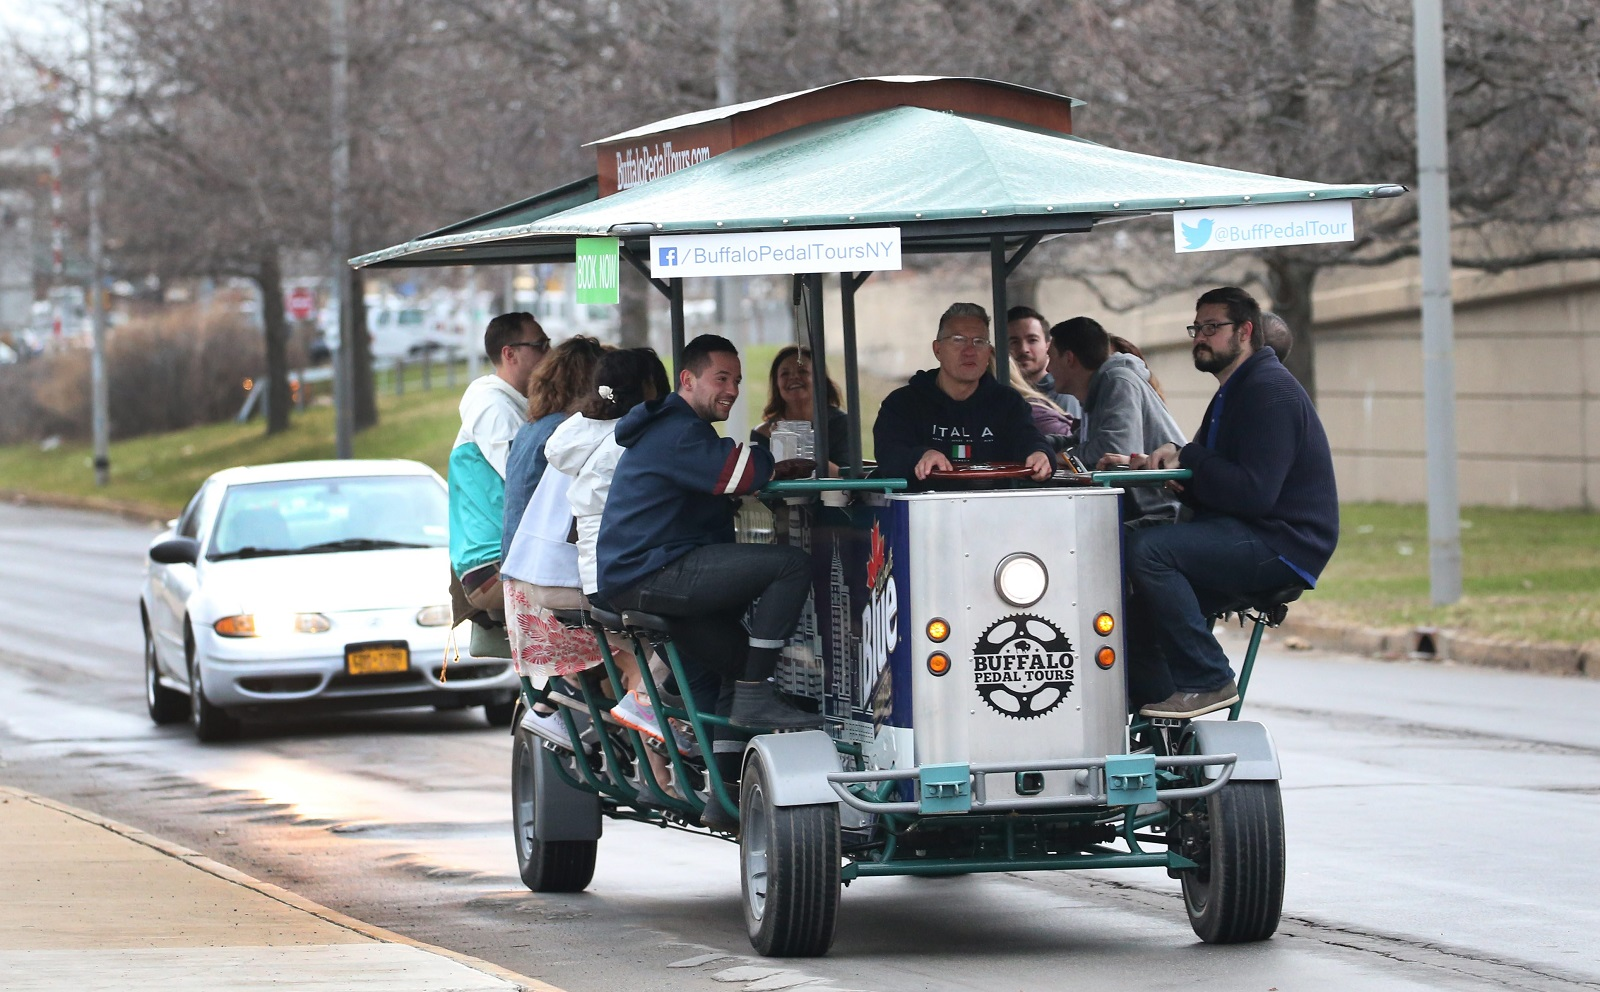 Buffalo Pedal Tours is one of the unique brew-based tours offered in Buffalo. (Sharon Cantillon/Buffalo News file photo)